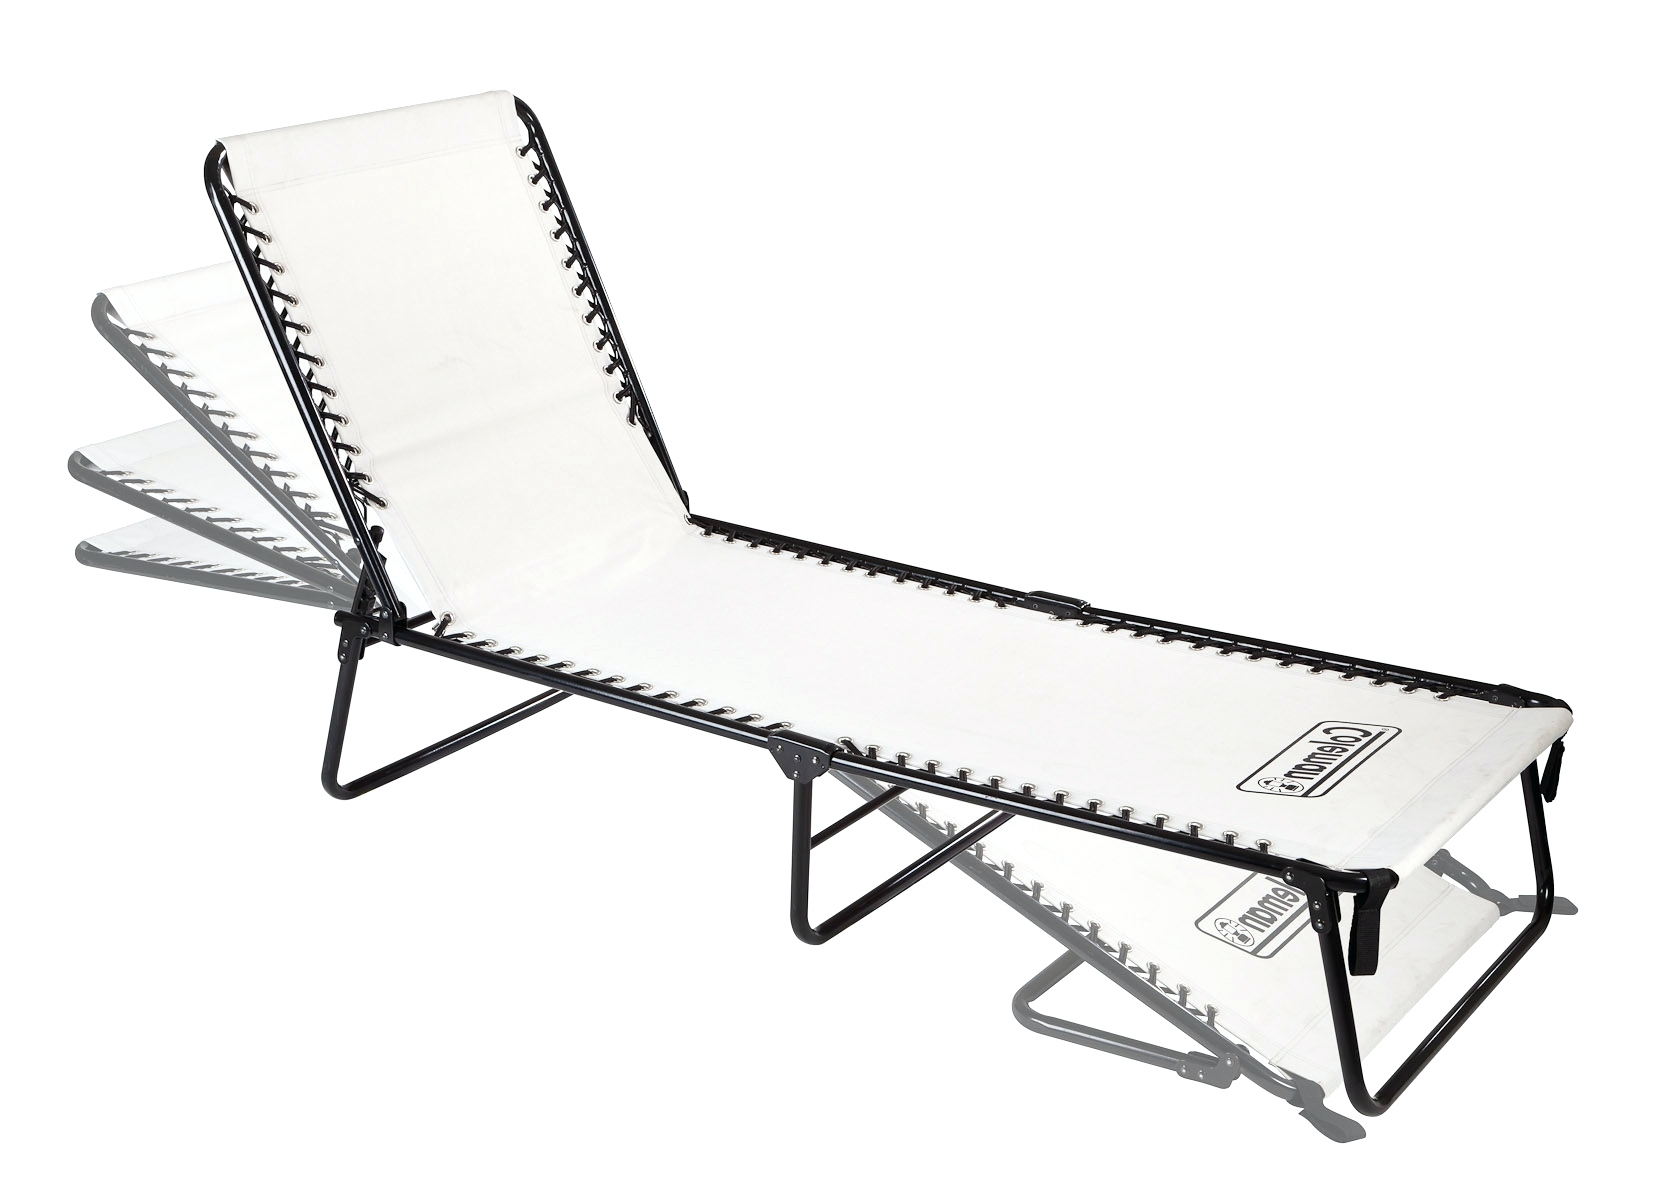 2018 Folding Chaises Inside Portable Chaise Lounge Chairs Outdoor • Lounge Chairs Ideas (View 2 of 15)